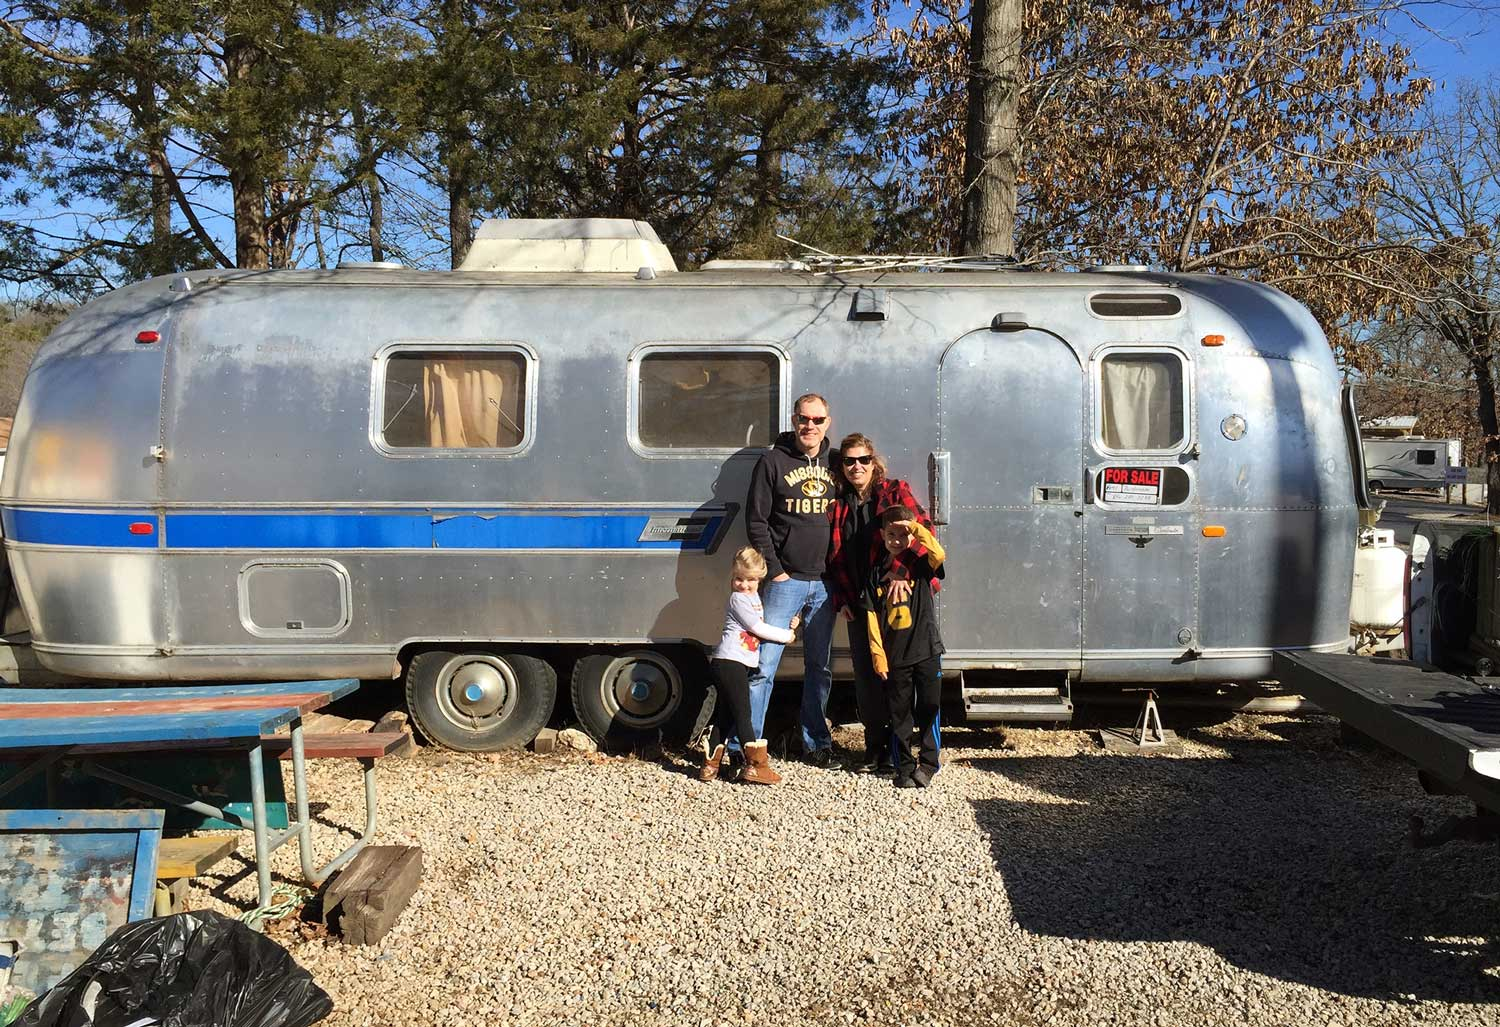 January 24, 2015: We bought our 1971 Airstream Overlander in Camdenton, Missouri. It was an exciting day! In many ways, I feel like this Airstream found us. After searching far and wide, this gem was basically in our backyard. We went to check her out and hours later, she was ours!